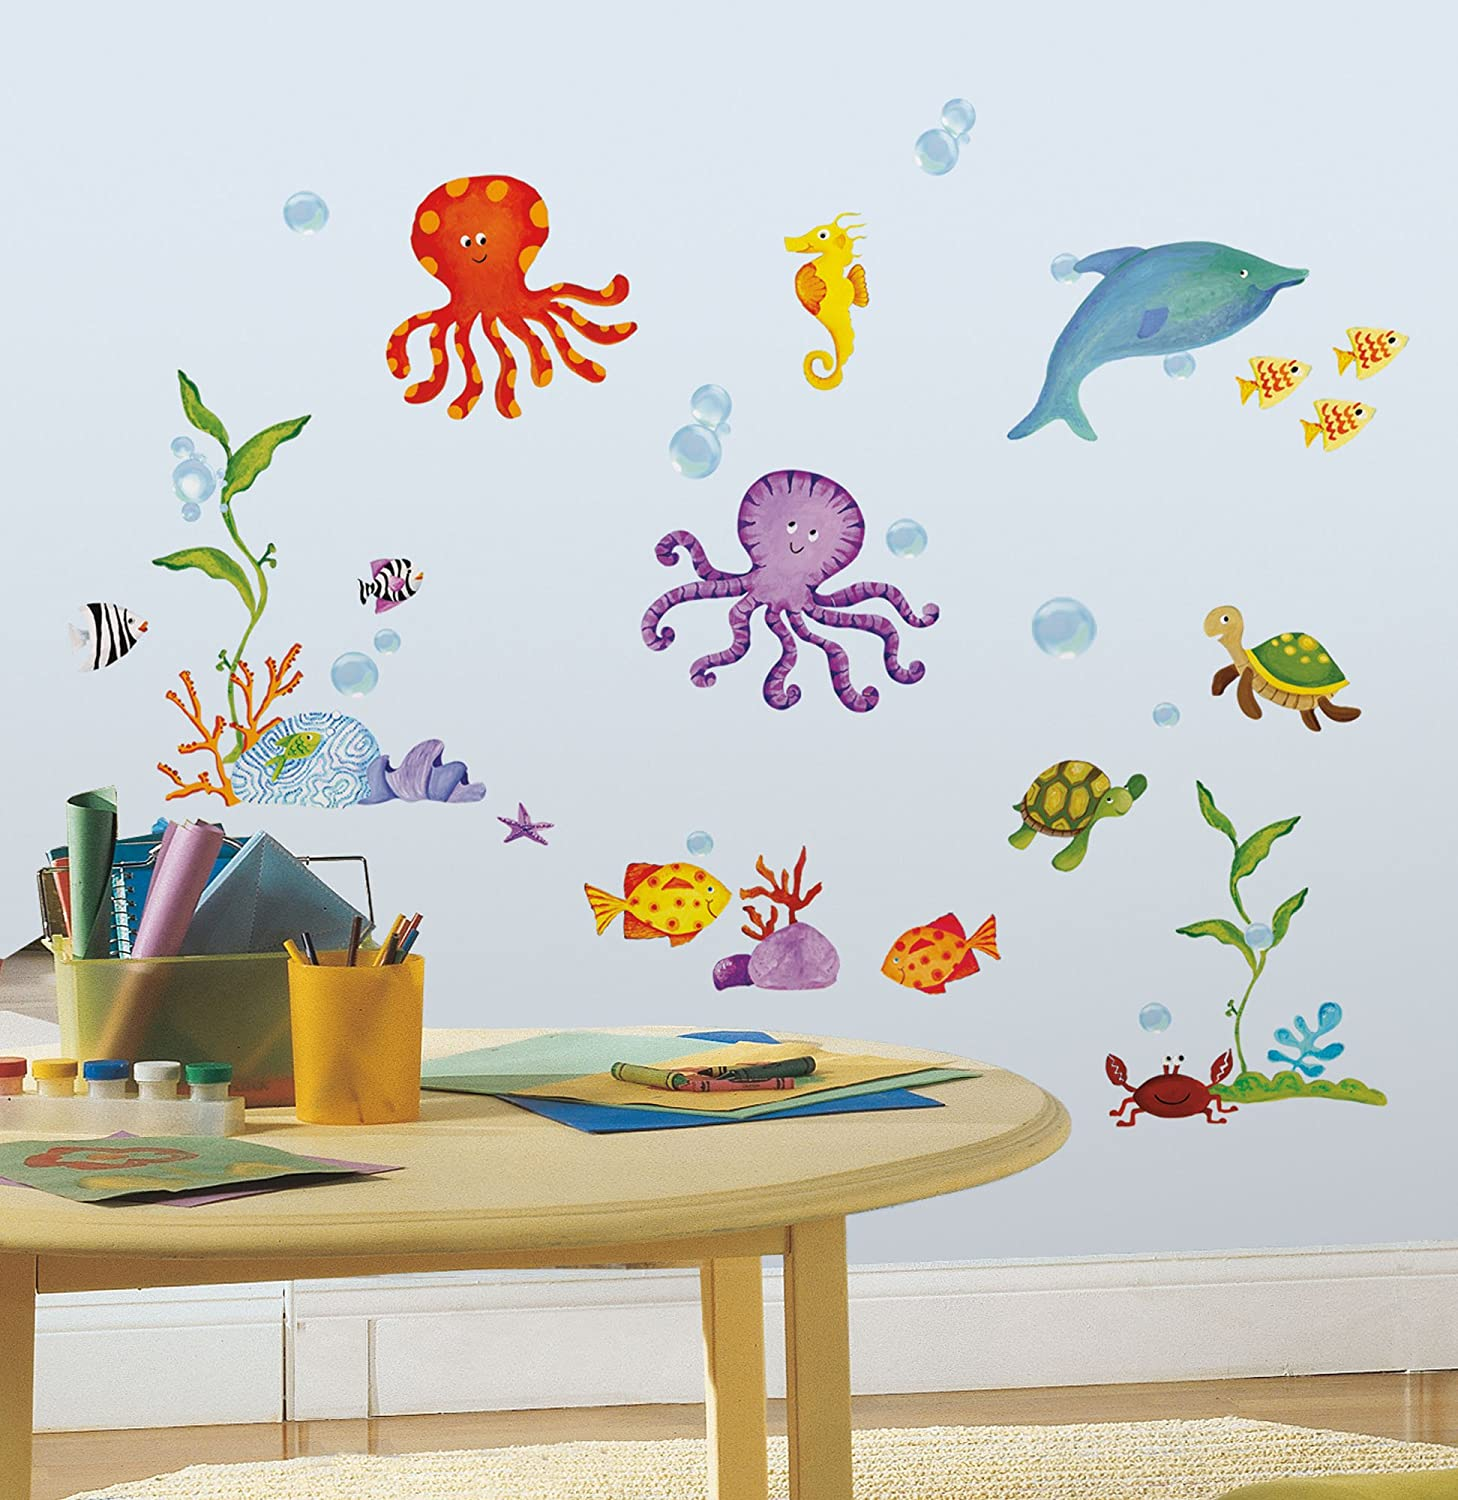 Superior Amazon.com: RoomMates RMK1851SCS Adventures Under The Sea Peel And Stick Wall  Decals: Home Improvement Part 14